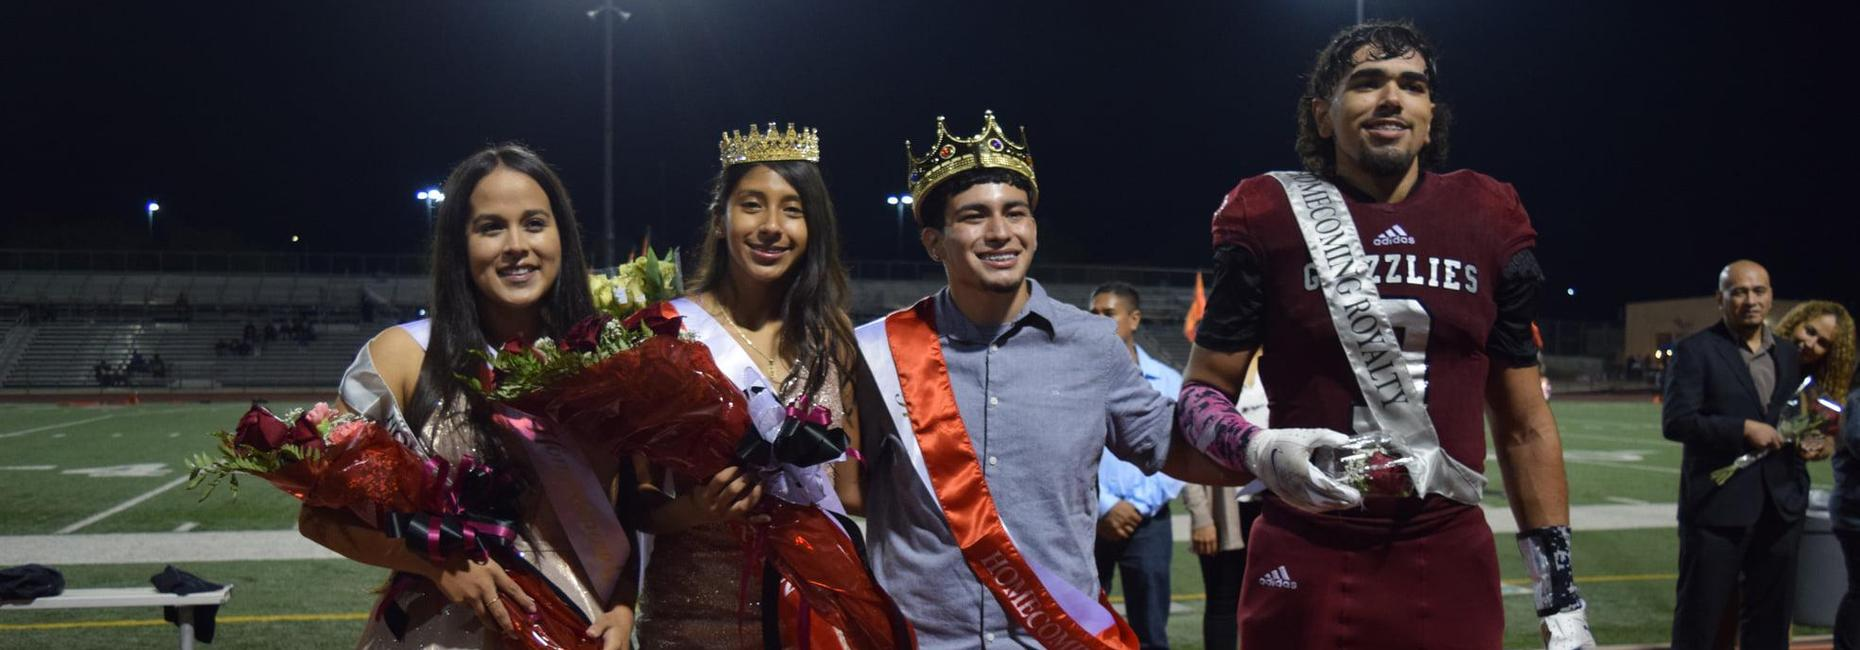 GHHS Homecoming King, Queen, Princess and Prince